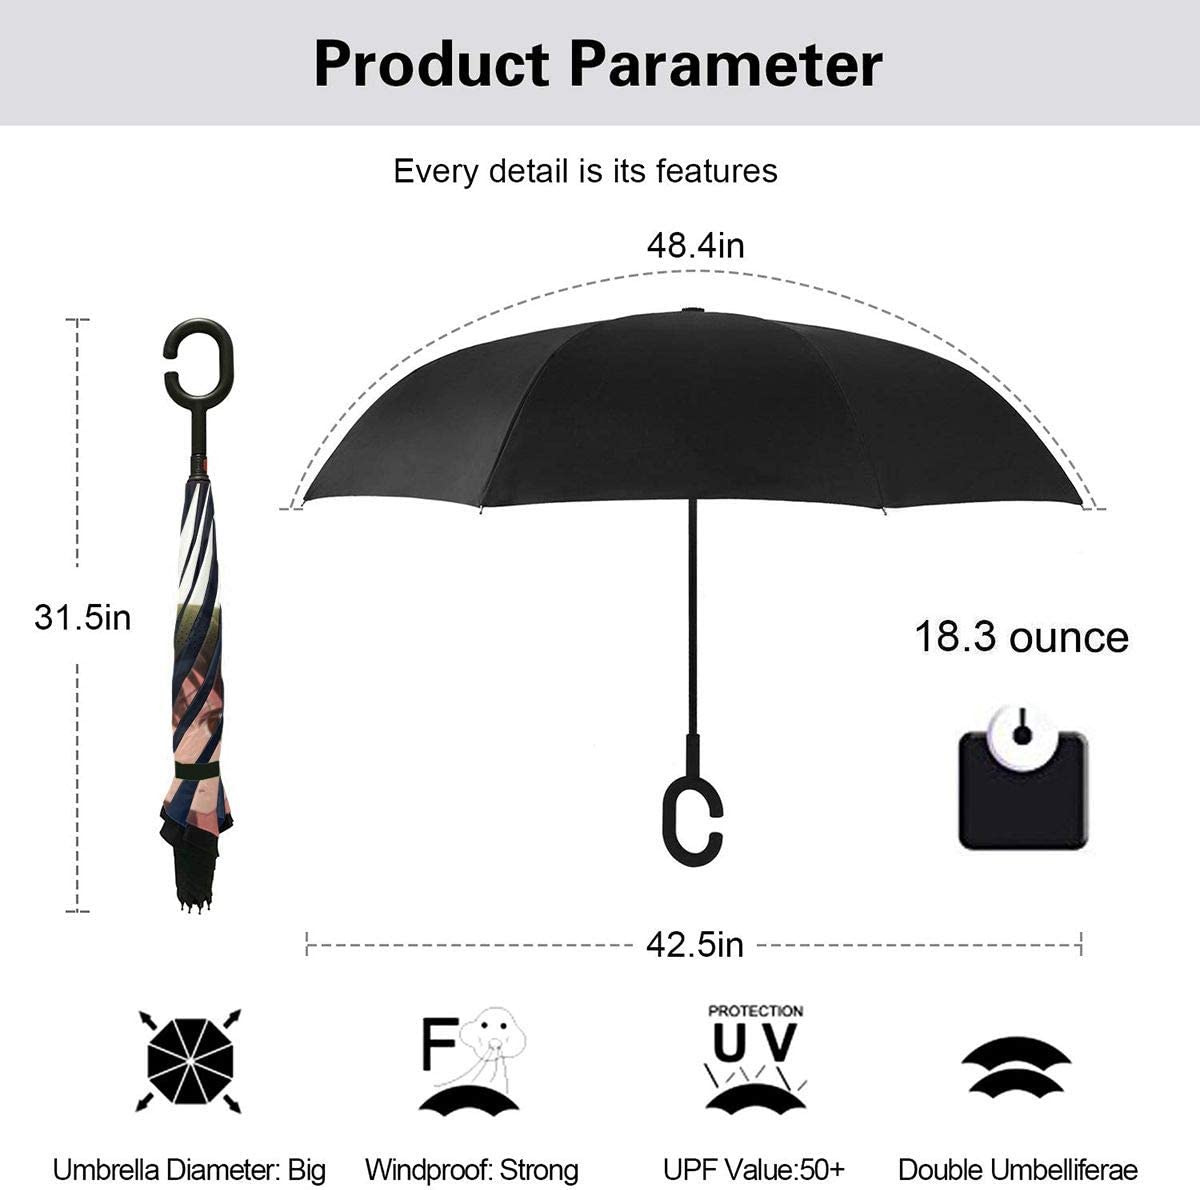 Windproof And Rainproof Double Folding Inverted Umbrella With C-Shaped Handle UV Protection Inverted Folding Umbrellas BANDAI NAMCO Entertainment Car Reverse Umbrella